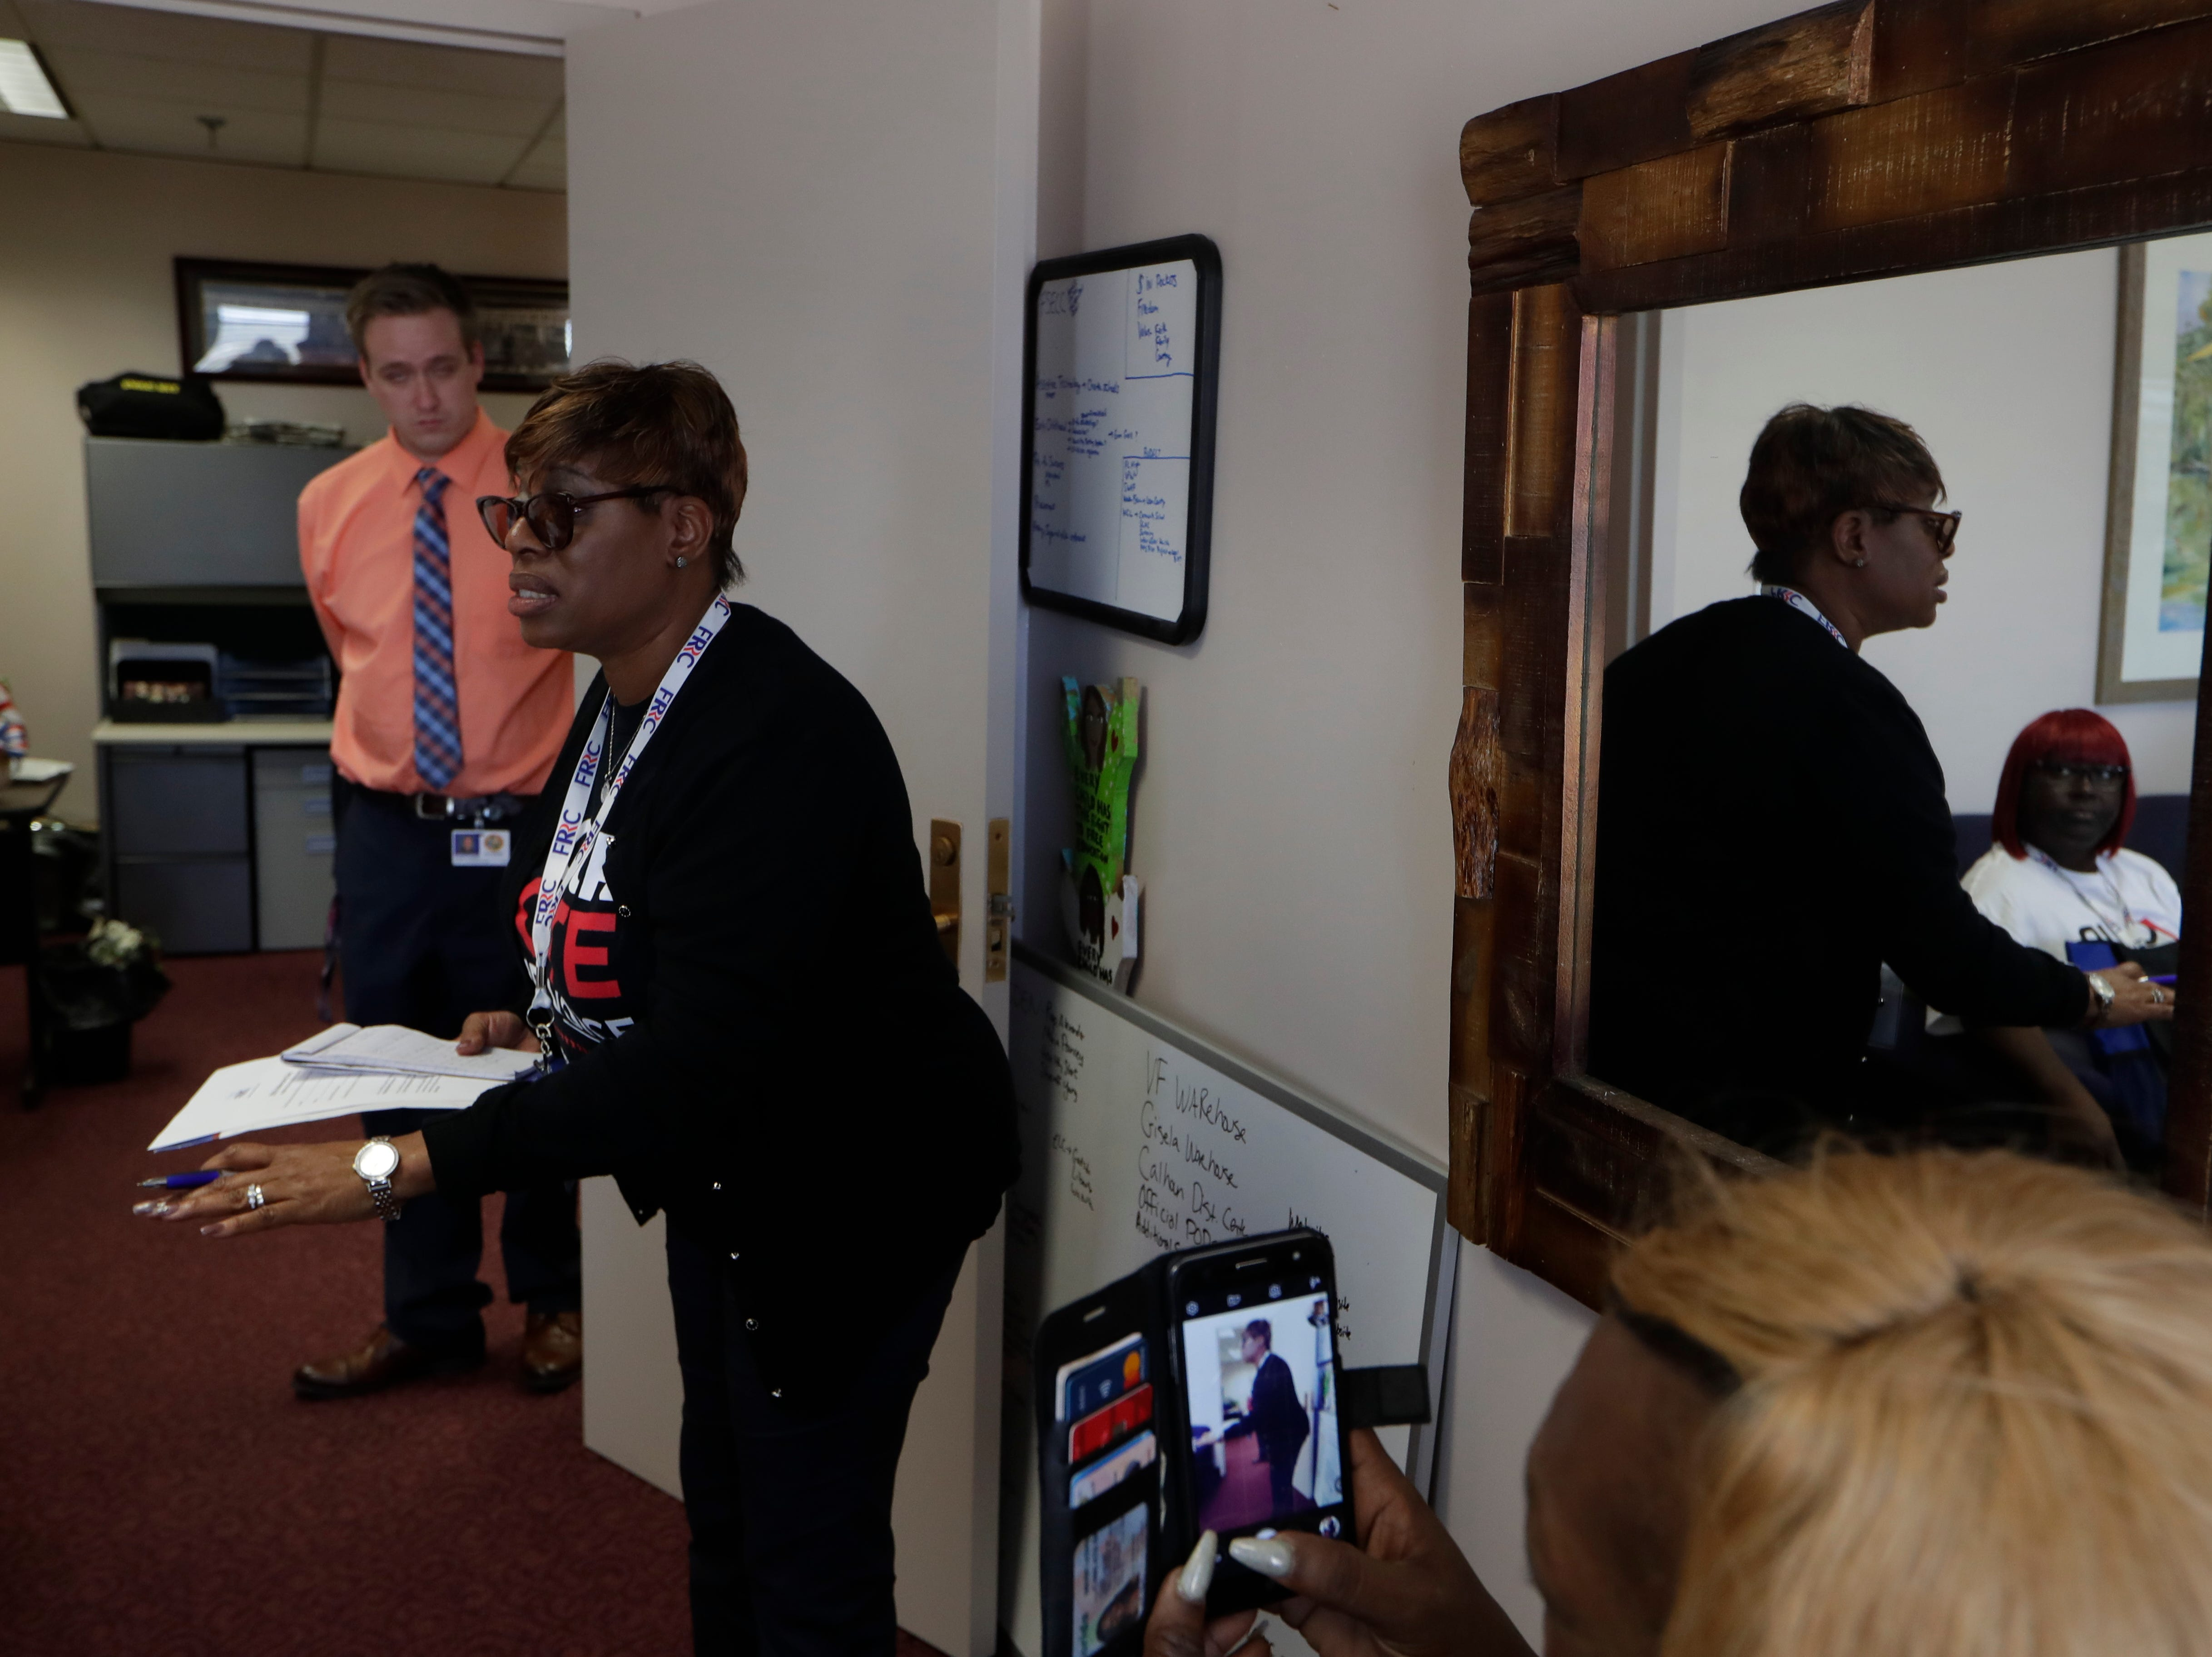 Janet Right gives an impassioned speech to Rep. Loranne Ausley in her office at the Capitol. Right was one of more than 500 Florida residents with felony convictions whose voting rights were restored in November who visited the Capitol to advocate for Amendment 4 legislation Tuesday, March 12, 2019.